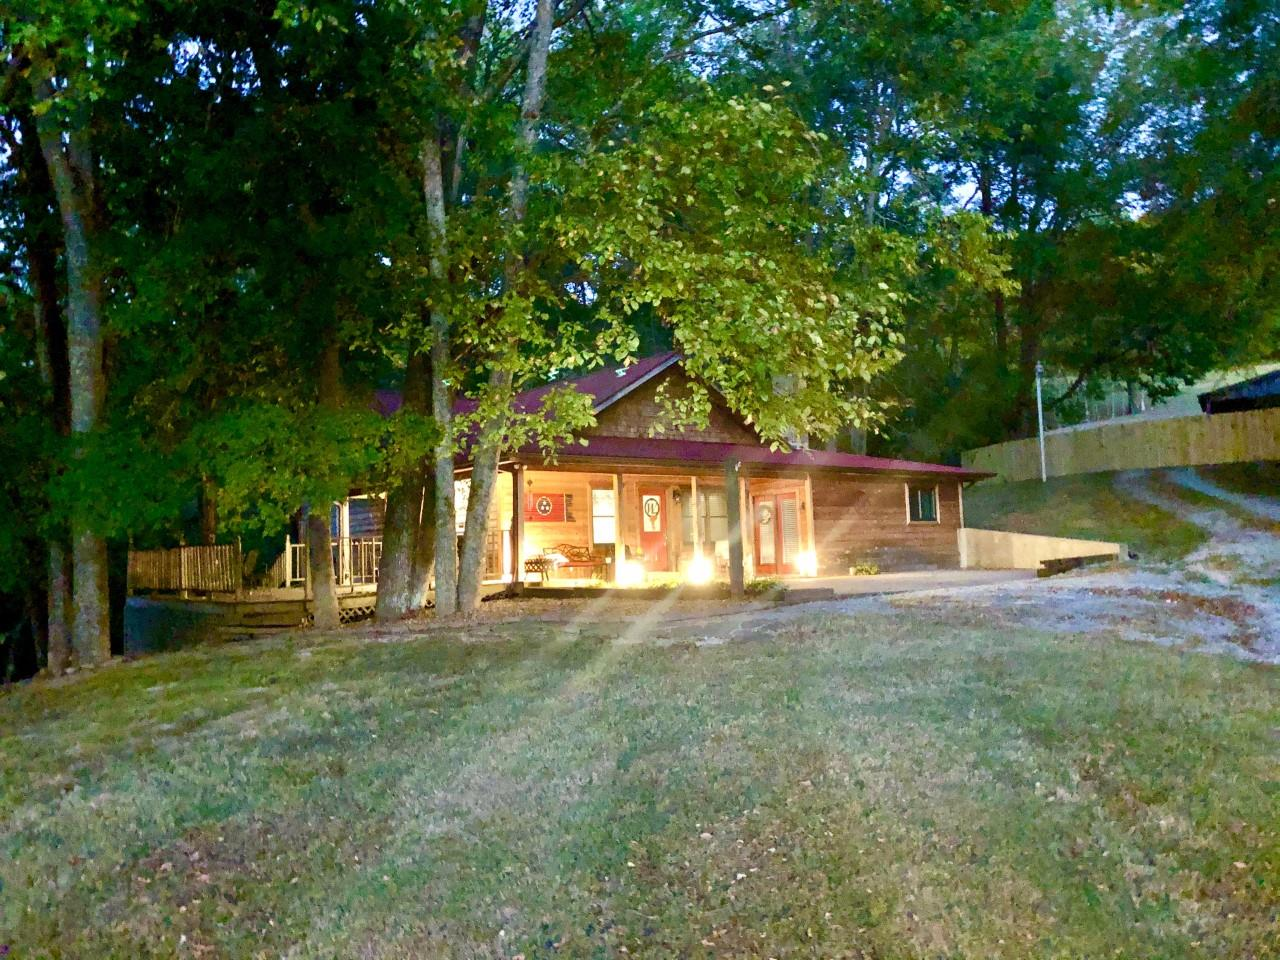 201 Alexandria Hwy, Brush Creek, TN 38547 - Brush Creek, TN real estate listing